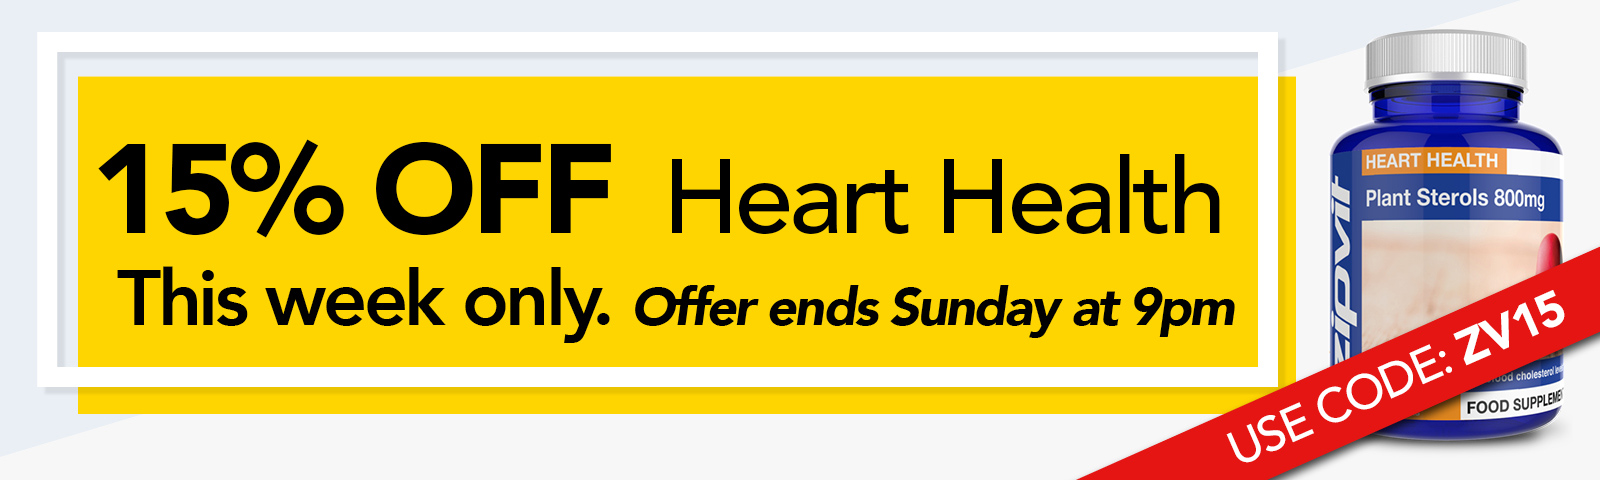 Save 15% on Heart Health supplements this week